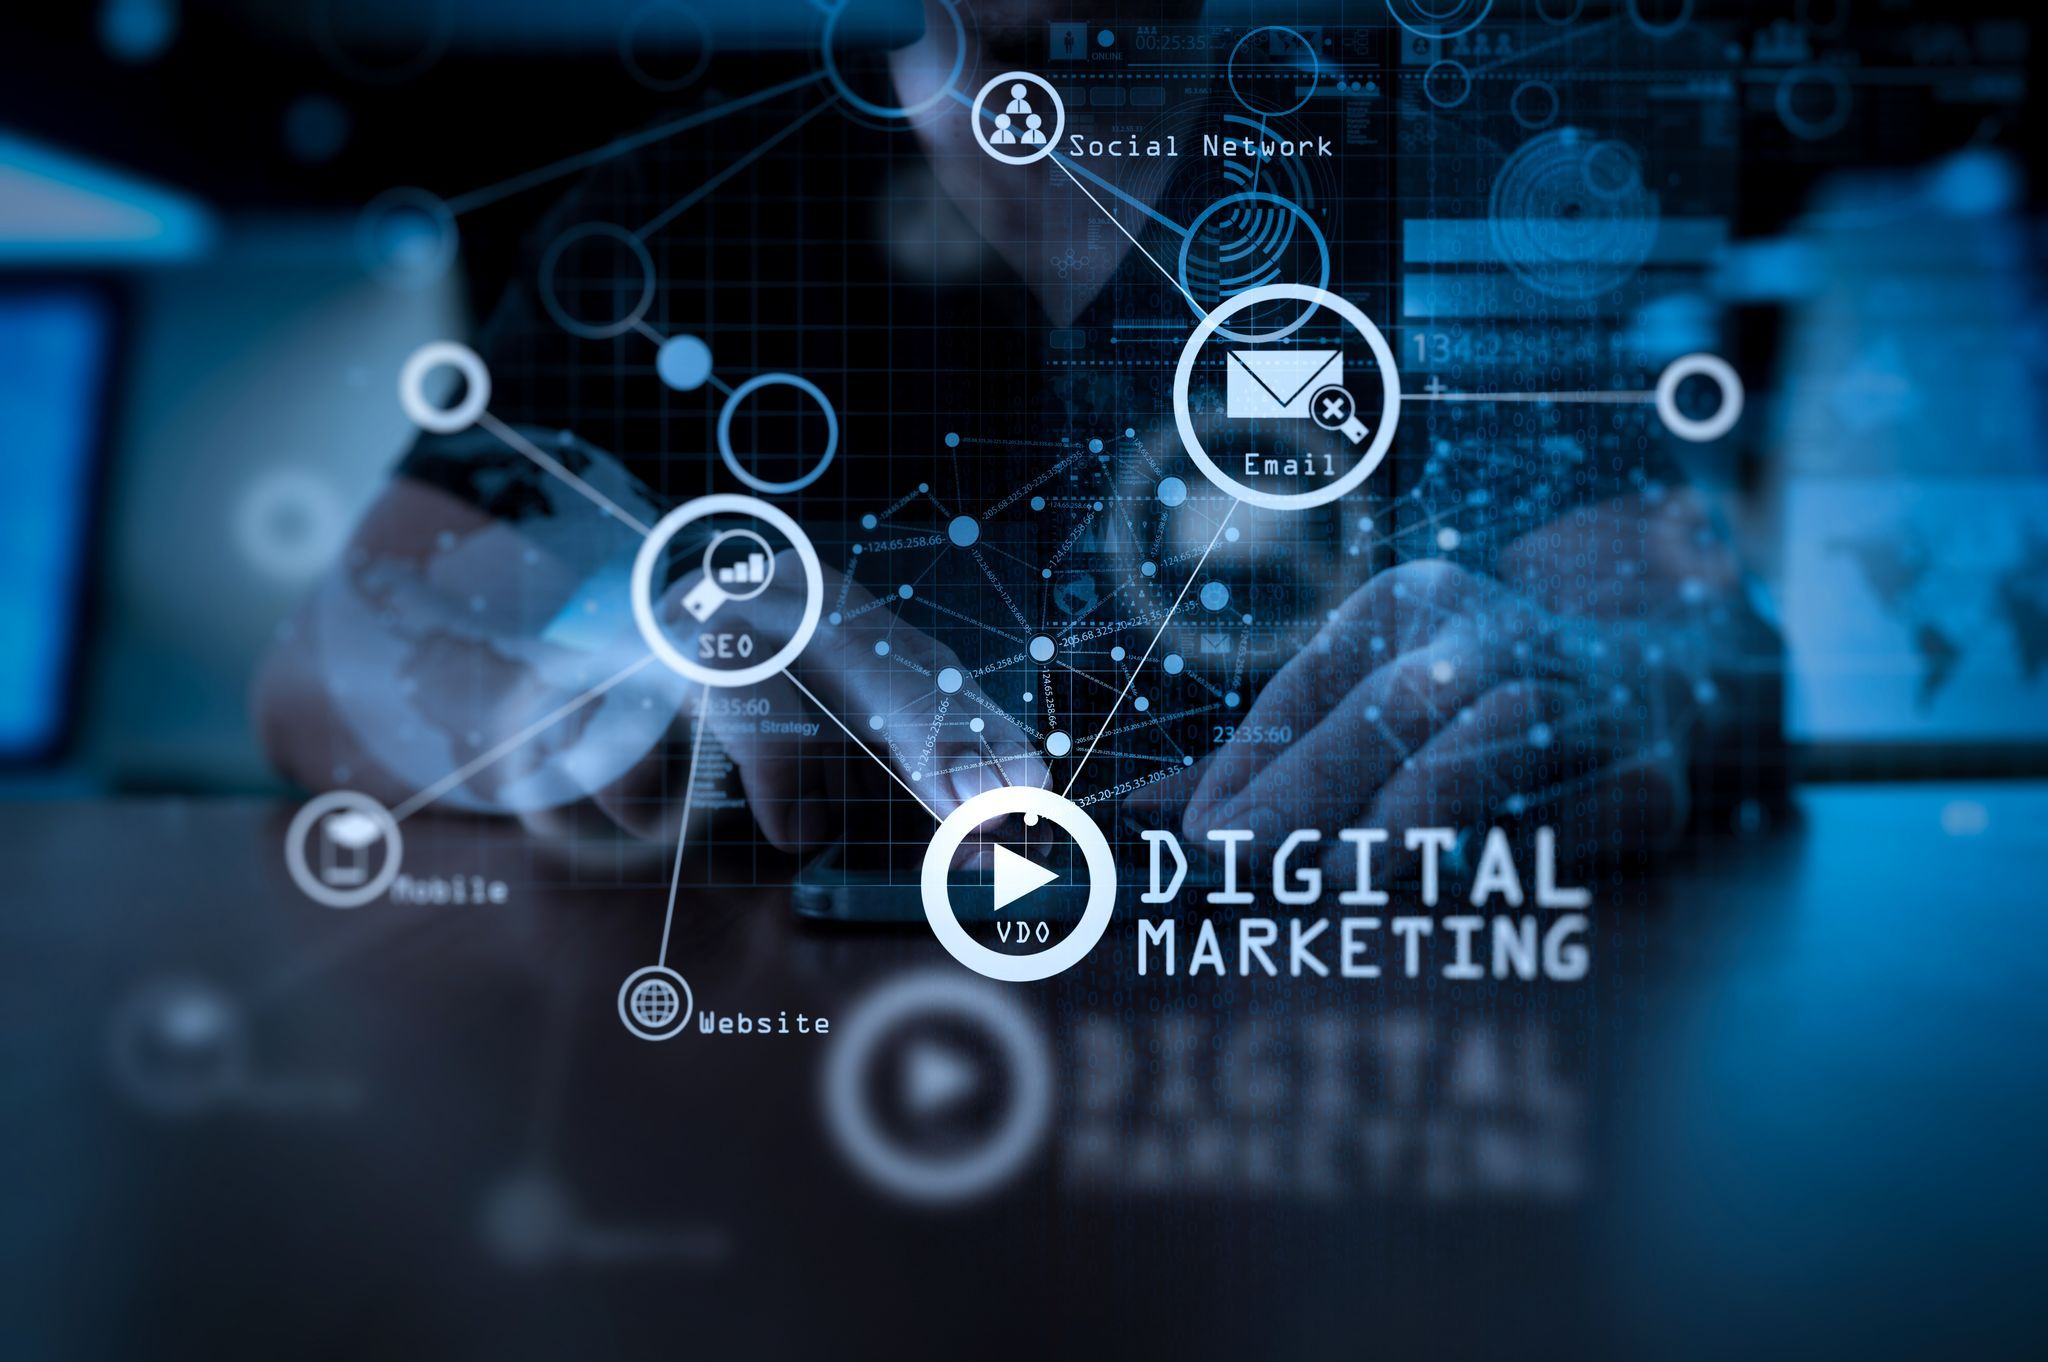 Digitales Marketing, Veranstaltung Master, Digital Business